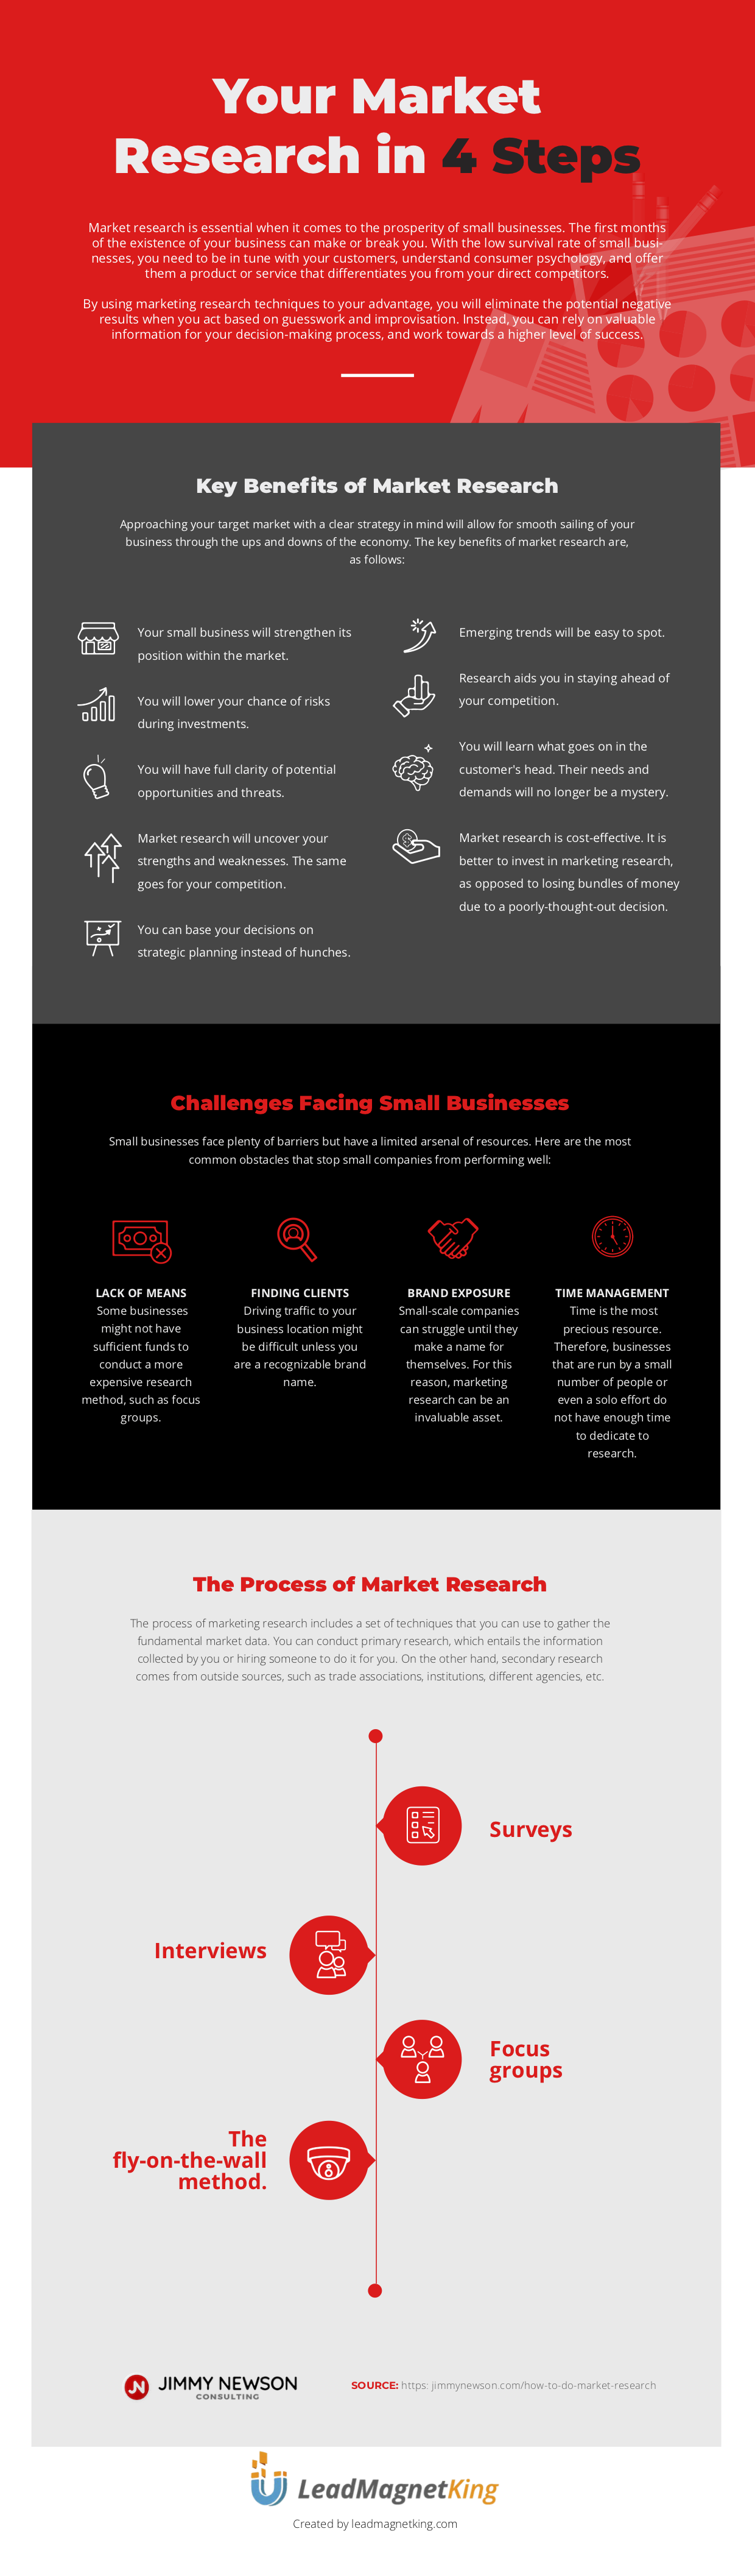 Your Market Research in 4 Steps Infographic - Jimmy Newson Consulting